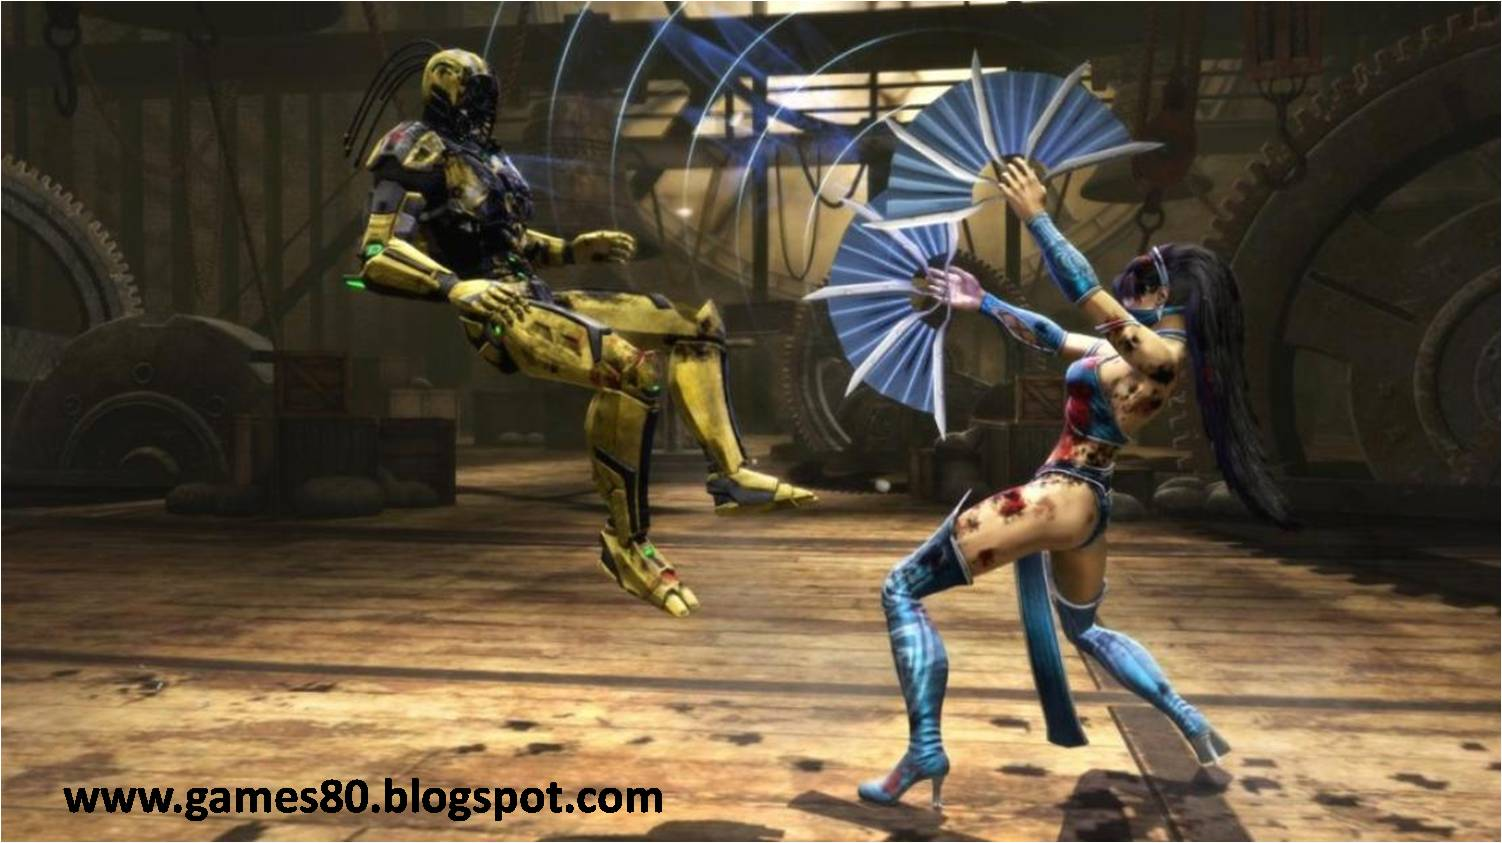 Mortal Kombat & Street Fighter the best fighting game series Ever ...